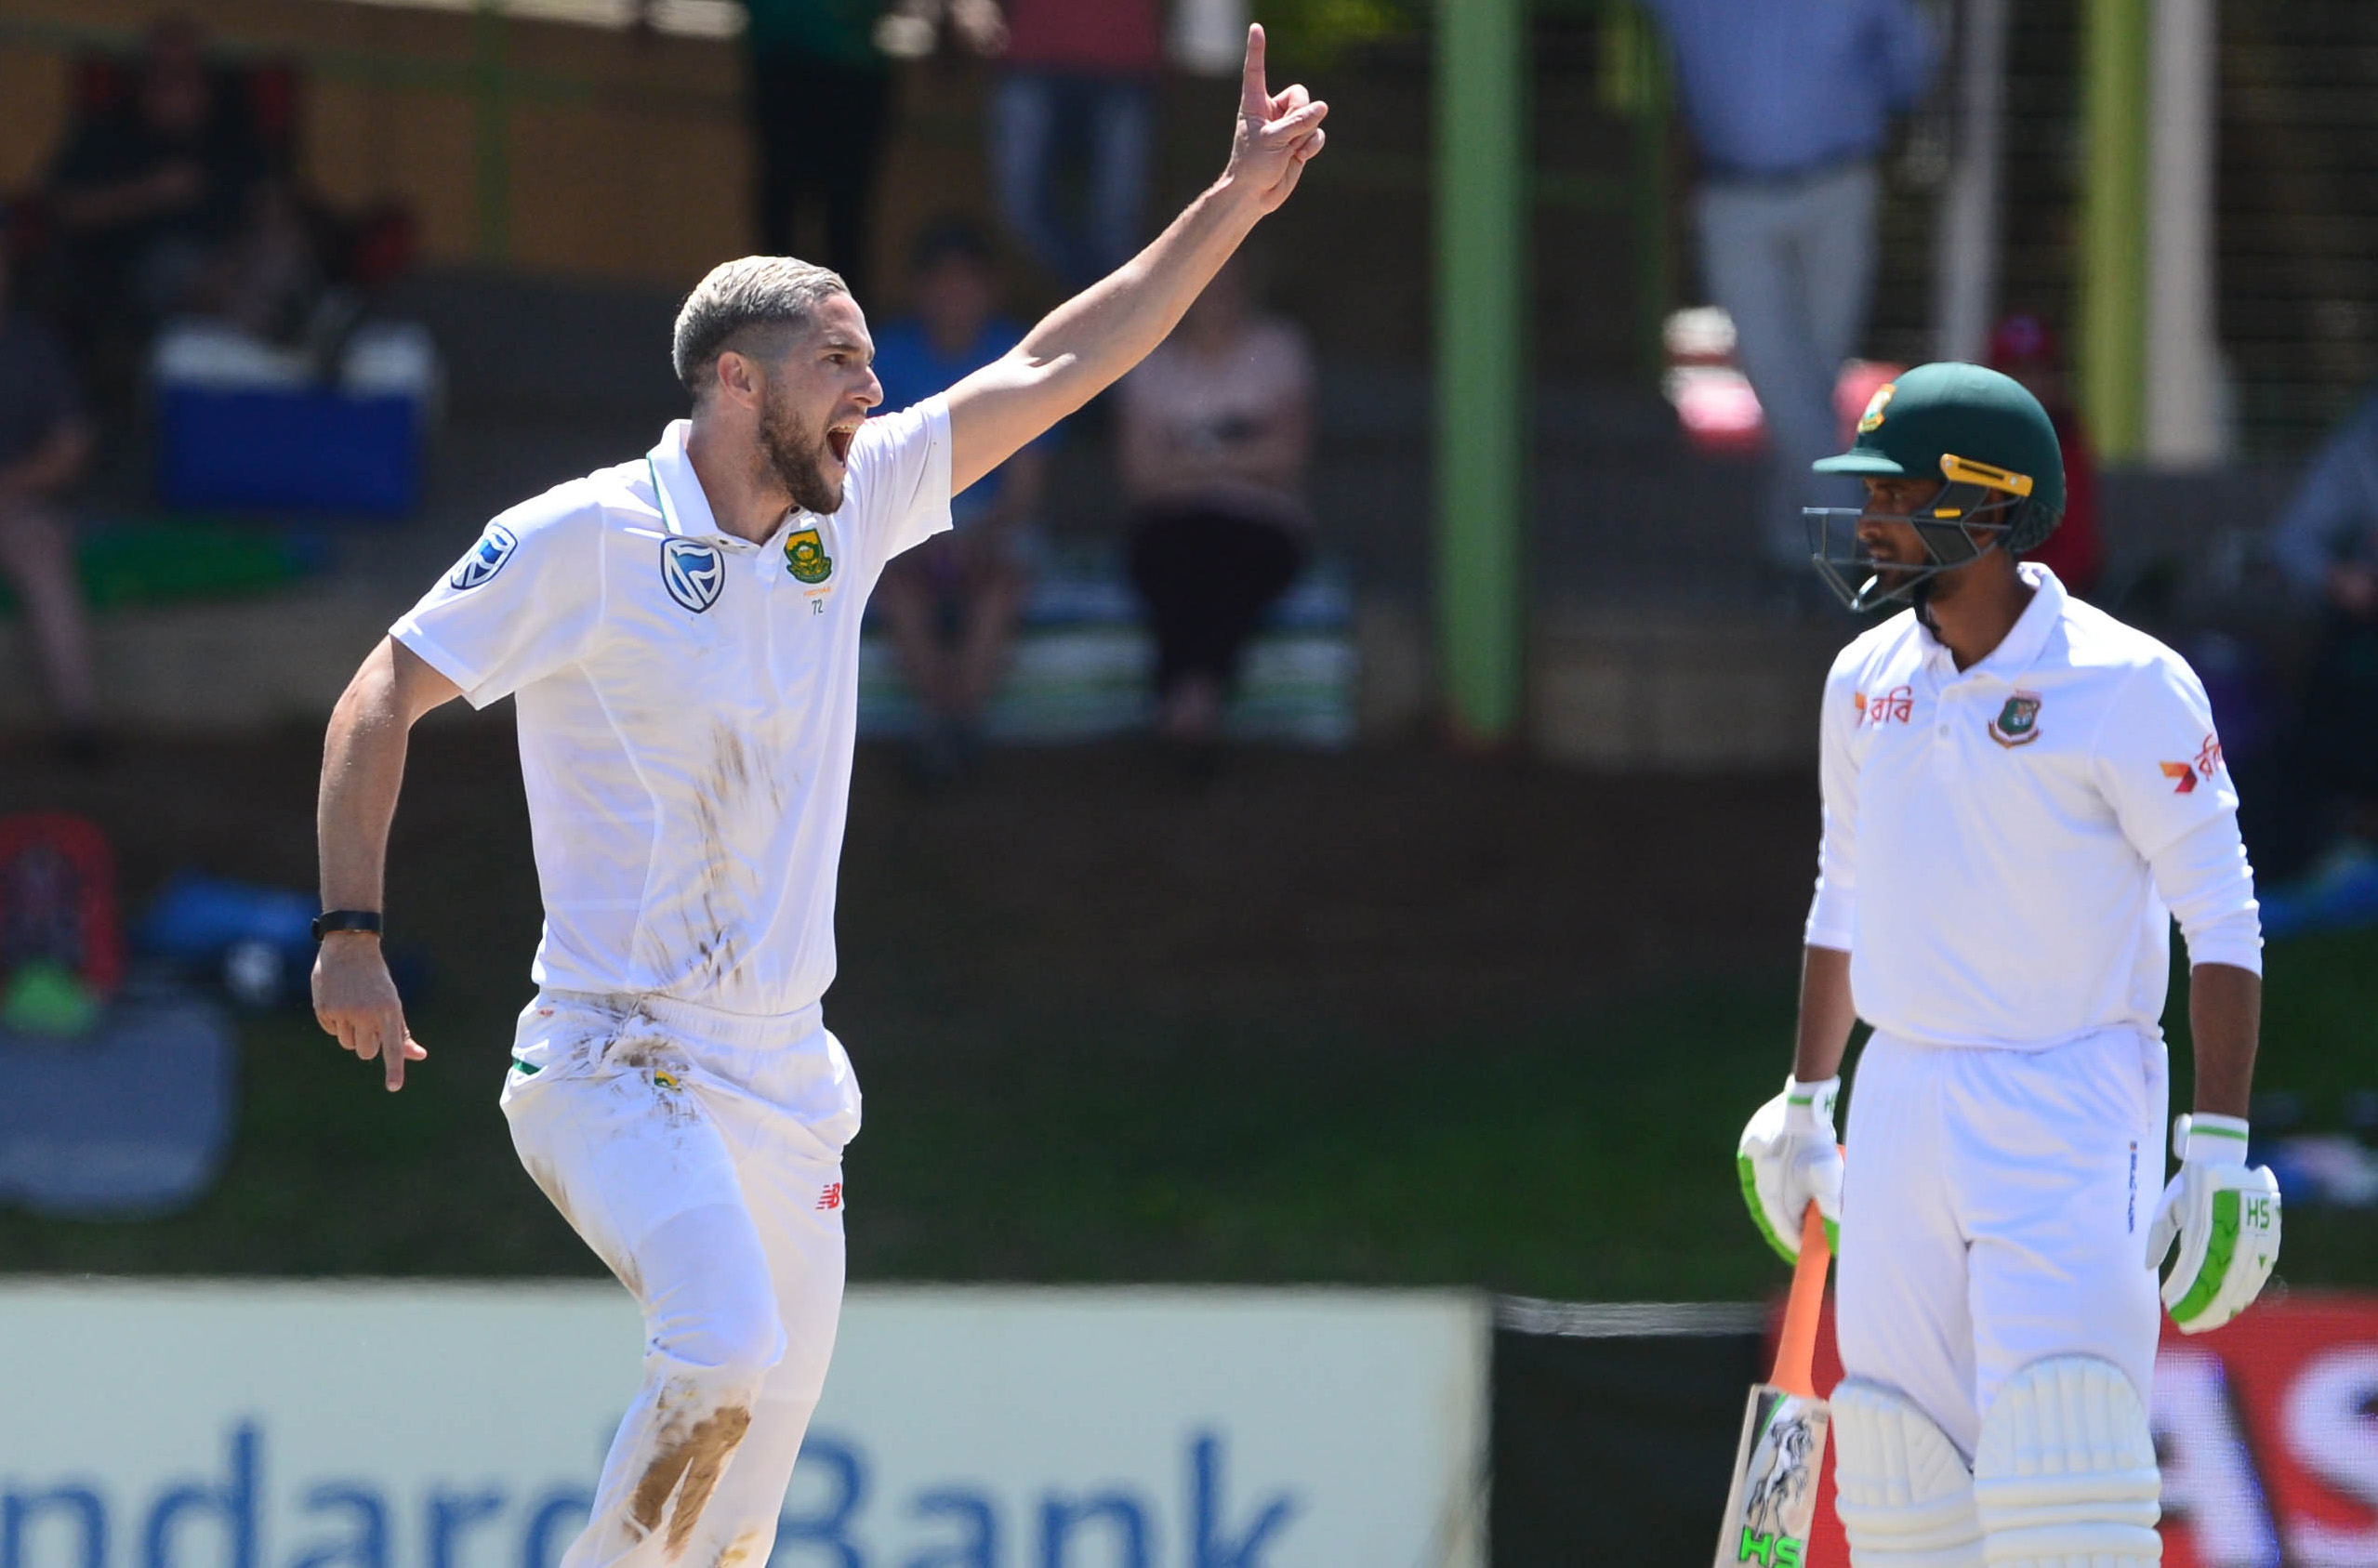 8 October 2017: Left-arm seamer Wayne Parnell celebrates the wicket of Mushfiqur Rahim on day three of the Proteas' second Sunfoil Test match against Bangladesh at Mangaung Oval in Bloemfontein, South Africa. (Photograph by Lee Warren/Gallo Images/Getty Images)